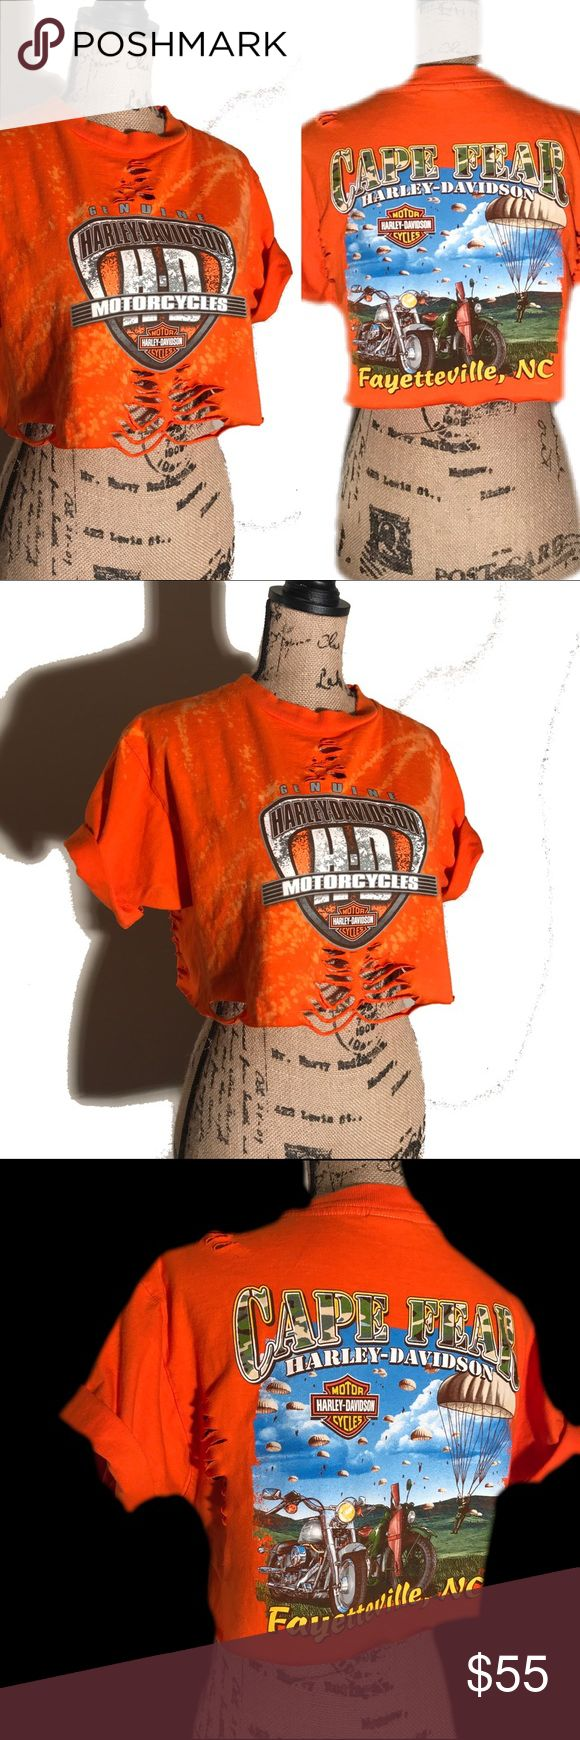 """✂️ Cut up distressed Harley Davidson crop top this is a custom cut Harley Davidson tshirt turned crop top. Bright Orange, it is made of rather thick cotton. Has been faded & distressed and """"worn in."""" Cute, comfy and one of a kind. Will fit a woman's size/medium.   #harley #harleydavidson #motorcycle #biker #rally #croptop #upcycled #distressed #rippedup #faded l #ripped #worn #orange #bright #urban #sturgis #laconia #reworked #restyled #reconstructed #upcycled #danamariedior #revampdlife…"""